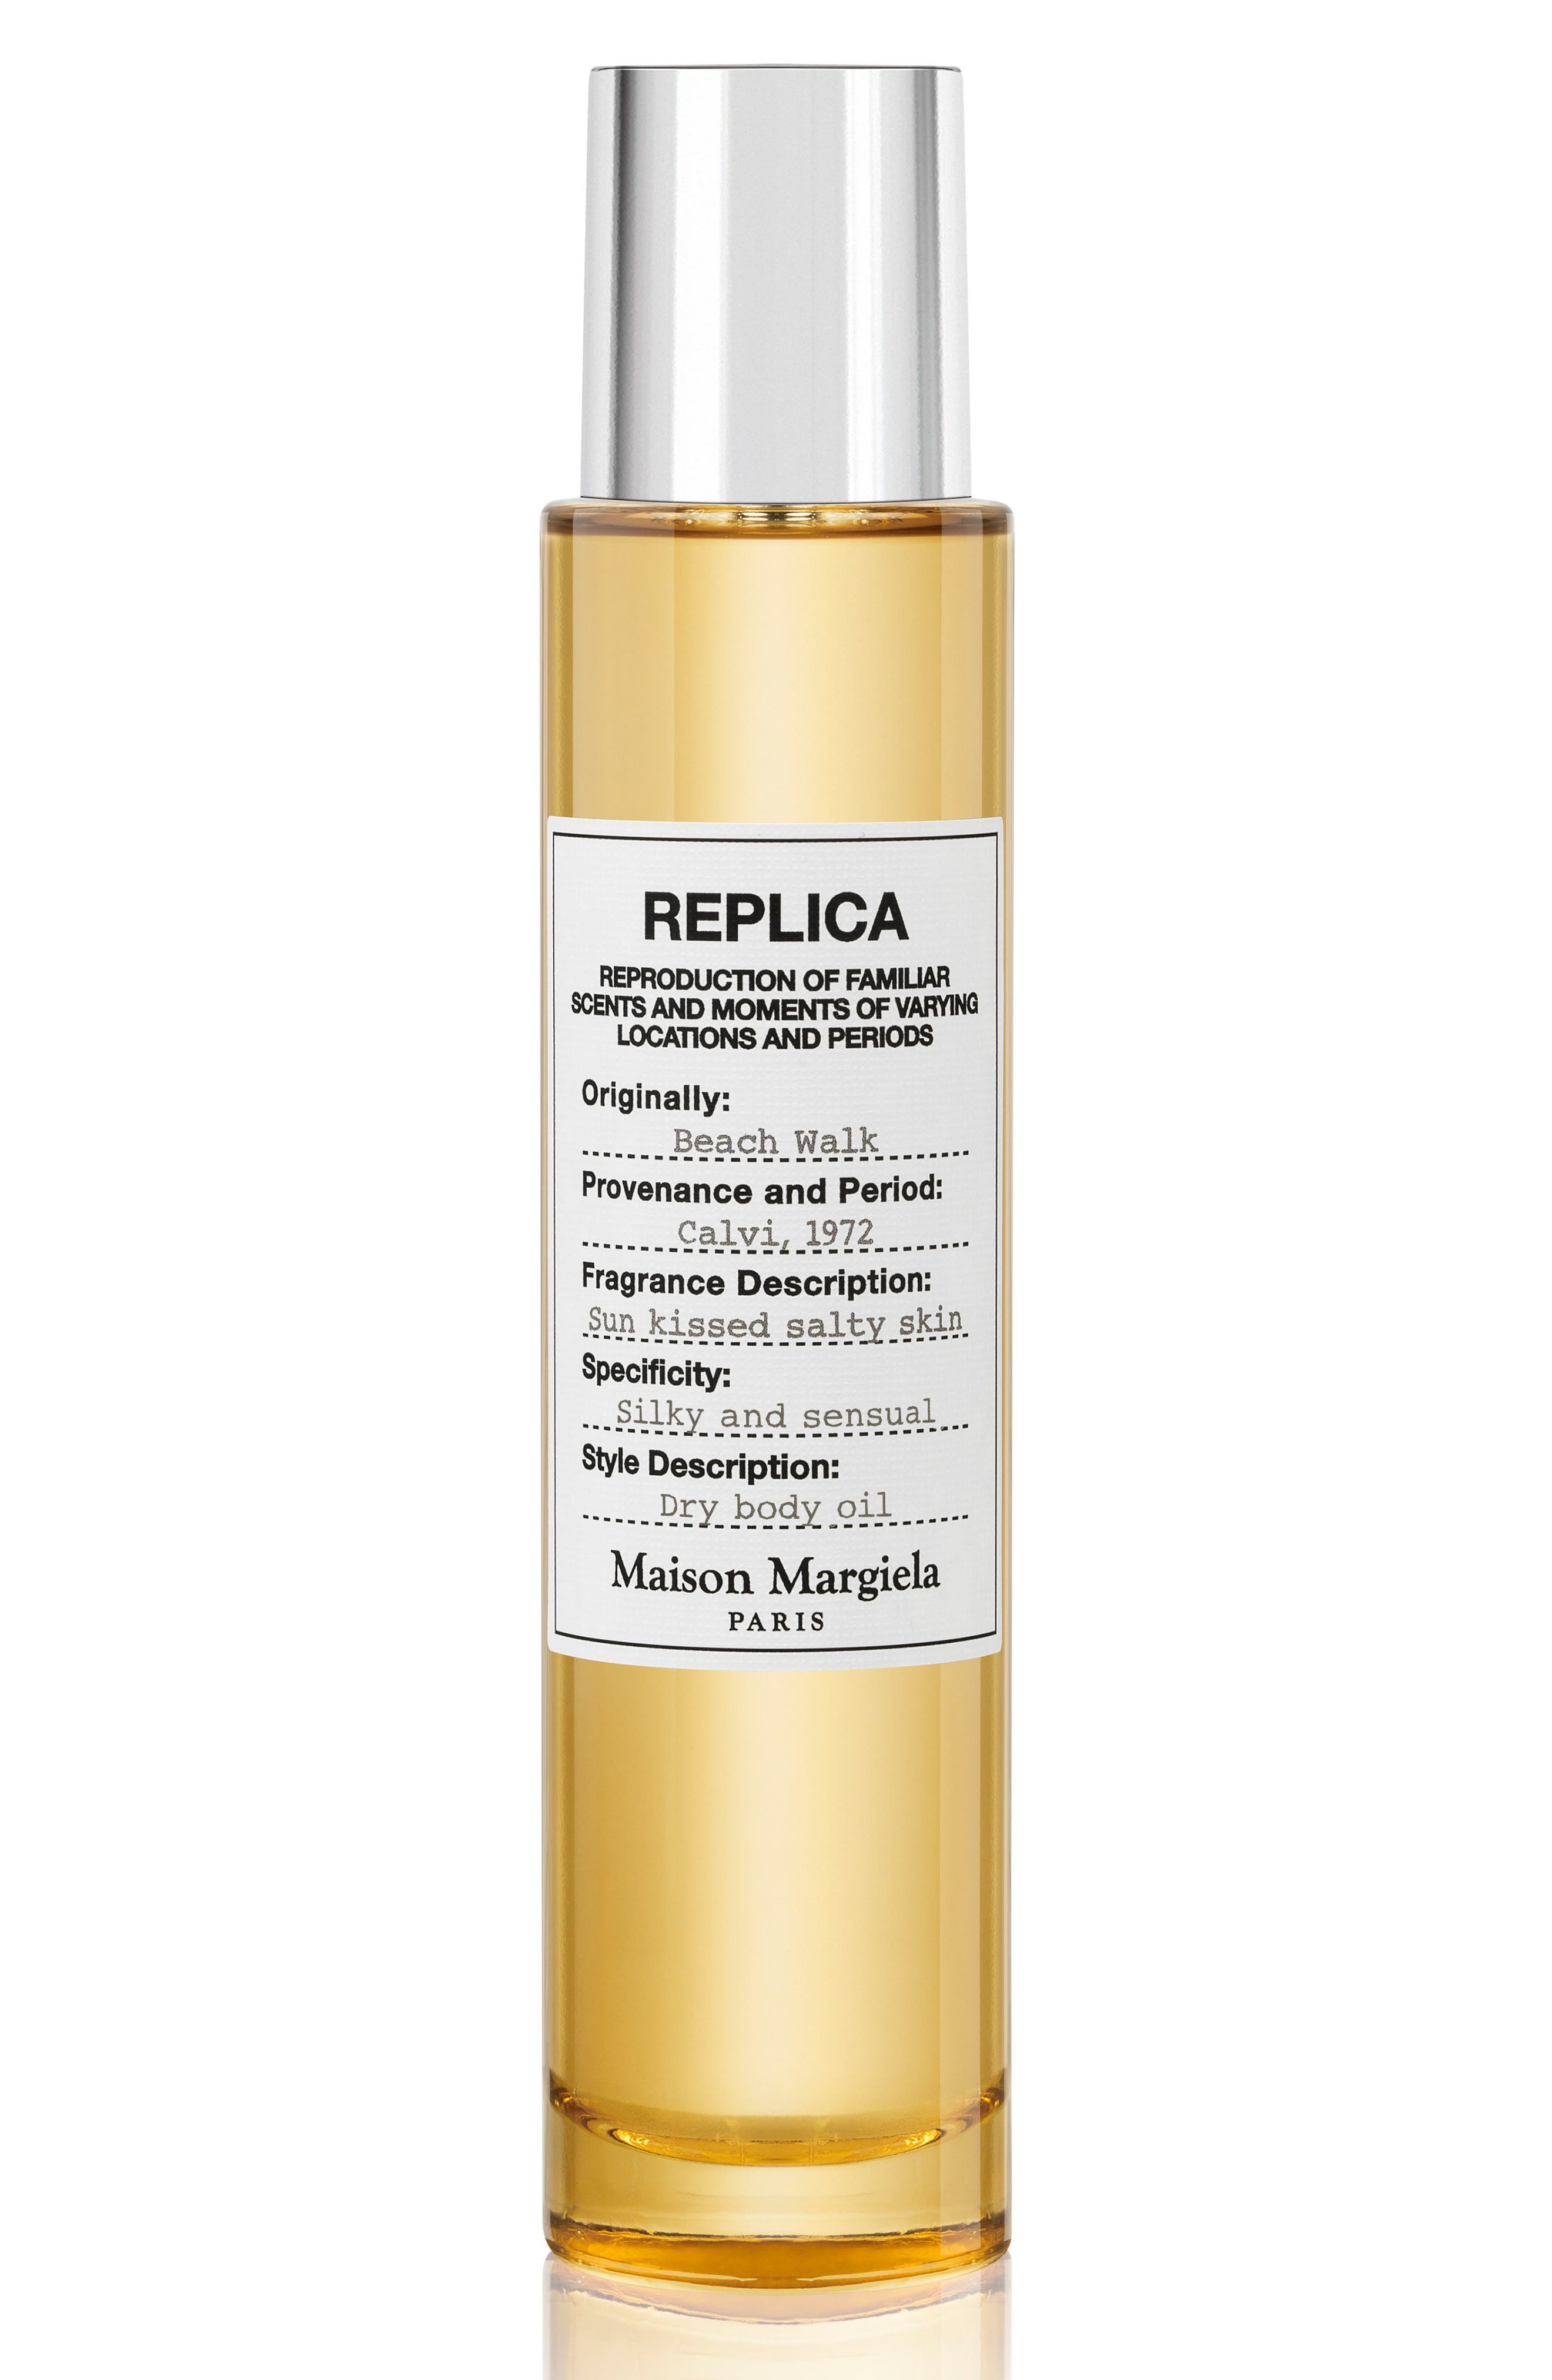 Maison Margiela Replica Beach Walk Perfumed Dry Body Oil